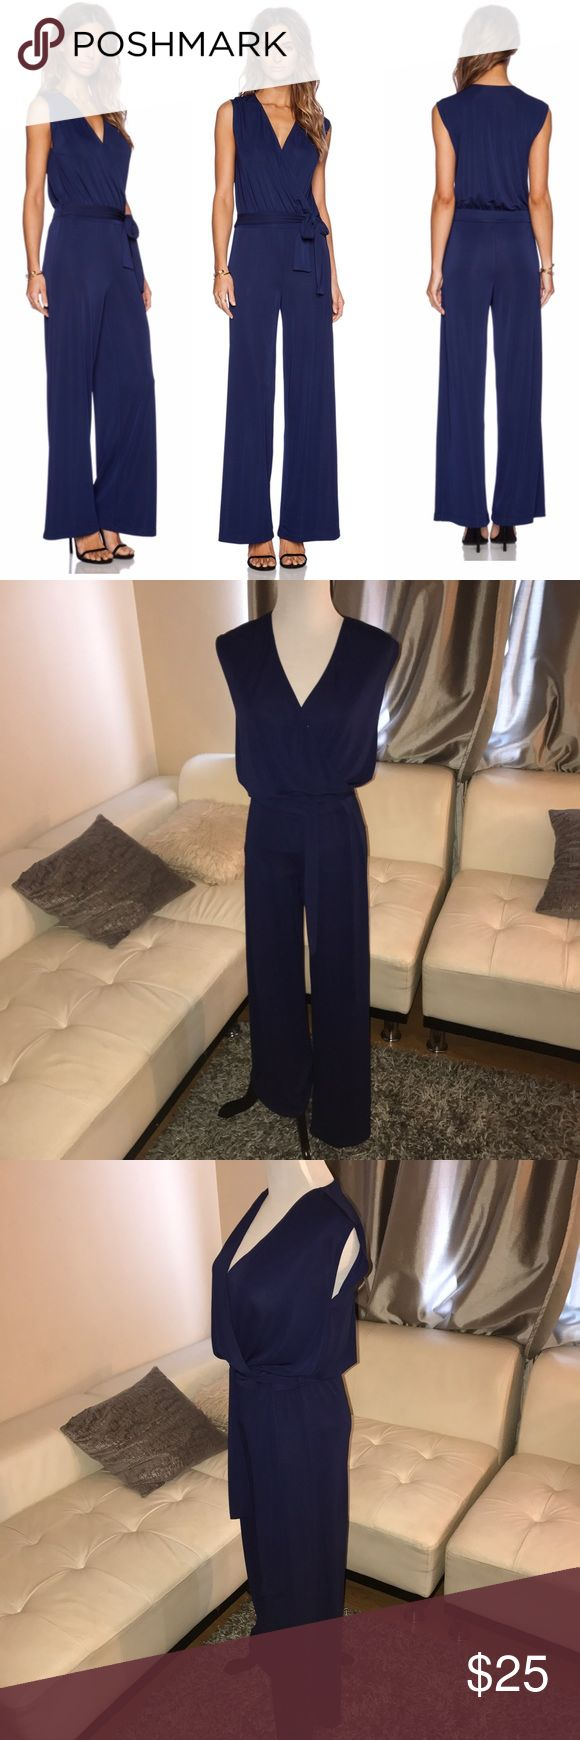 Bailey 44 Nautical Navy Jumpsuit The Nautical Jumpsuit by Bailey 44 is a sleeveless jumpsuit with cross-front top, tie detail at waist, and wide straight legs. Fabric 94% Polyester, 6% Spandex. Dry Clean Only. Bailey 44 Dresses